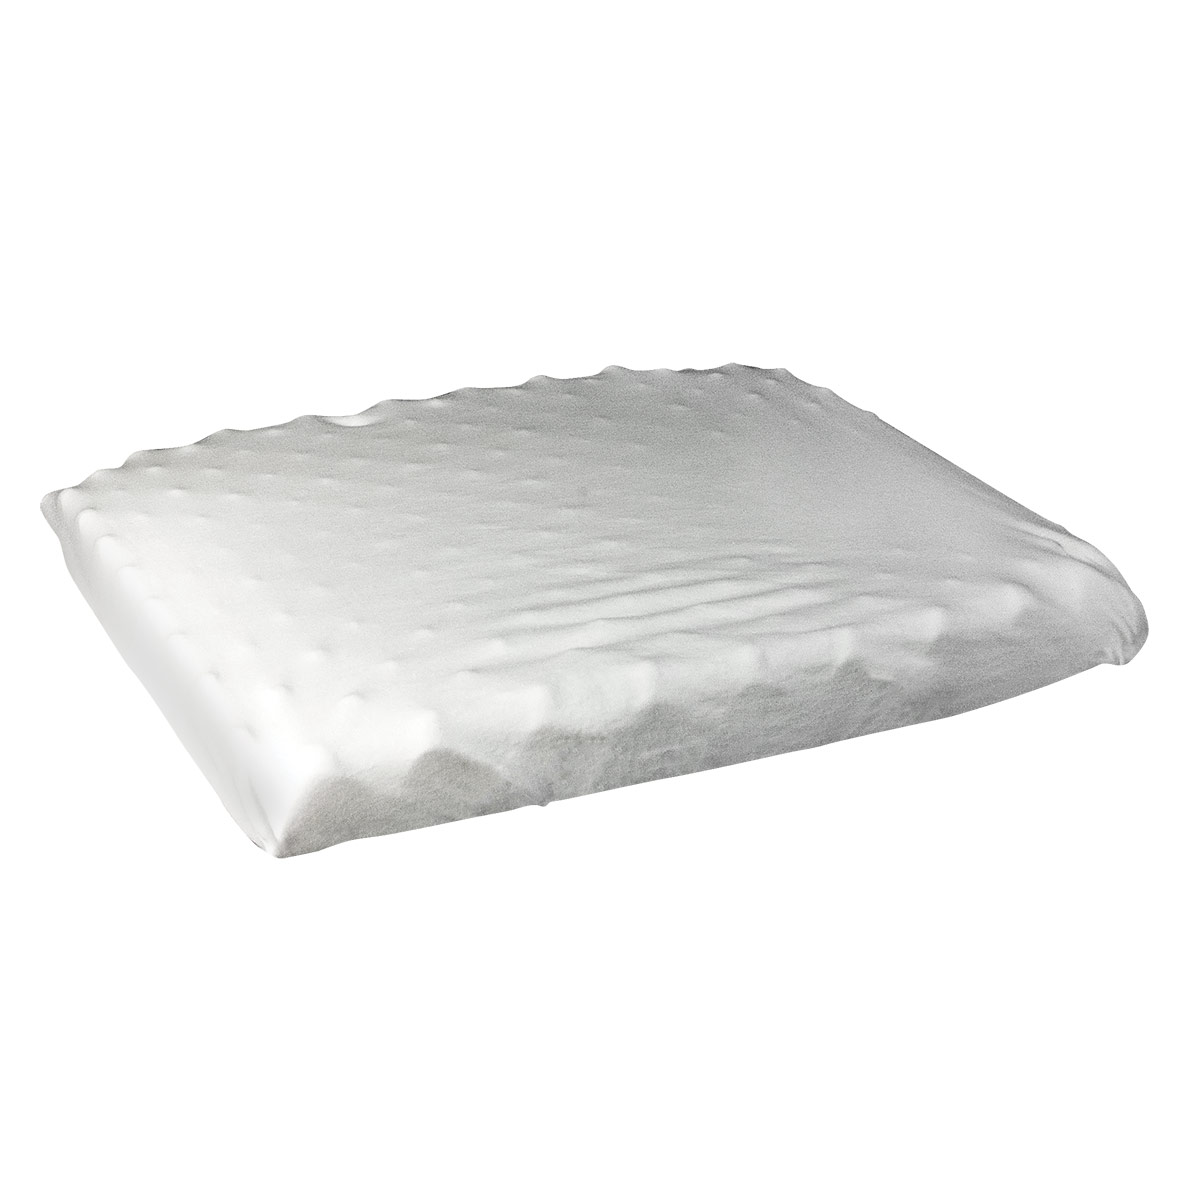 Eggcrate Seat Cushion with Poly-Cotton Cover Price: $21.25